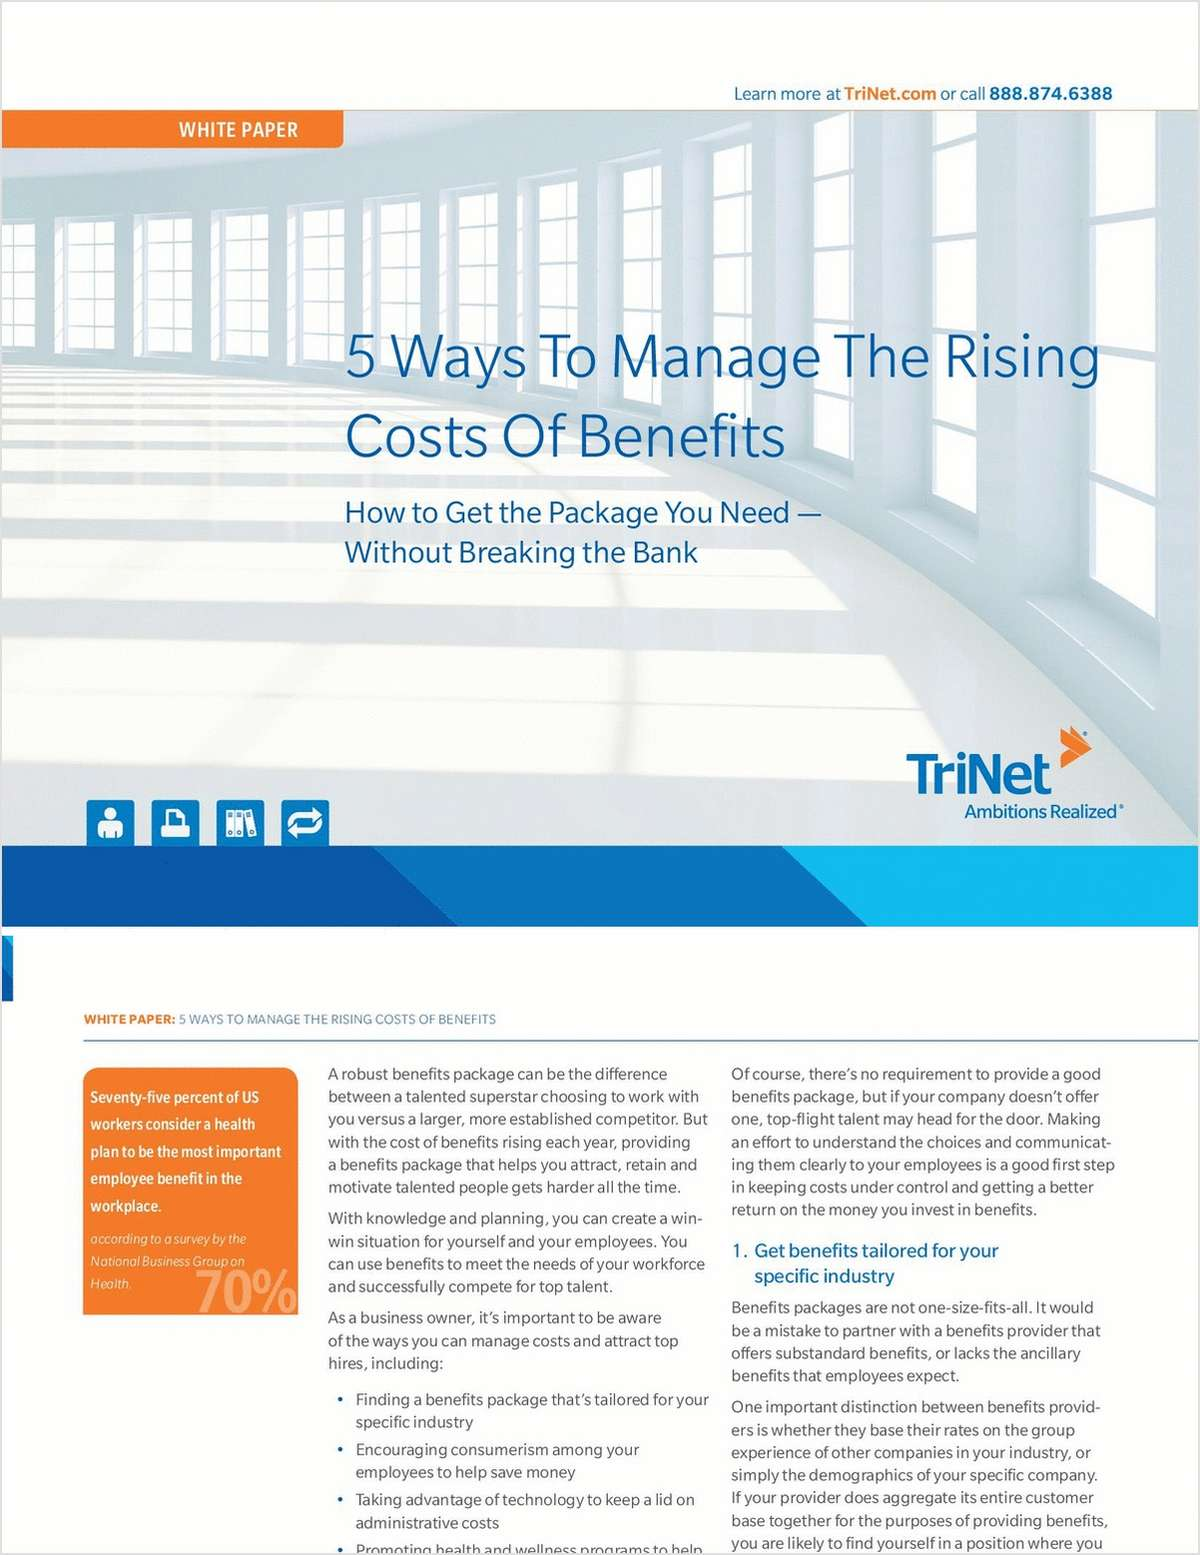 5 Ways To Manage The Rising Costs Of Benefits